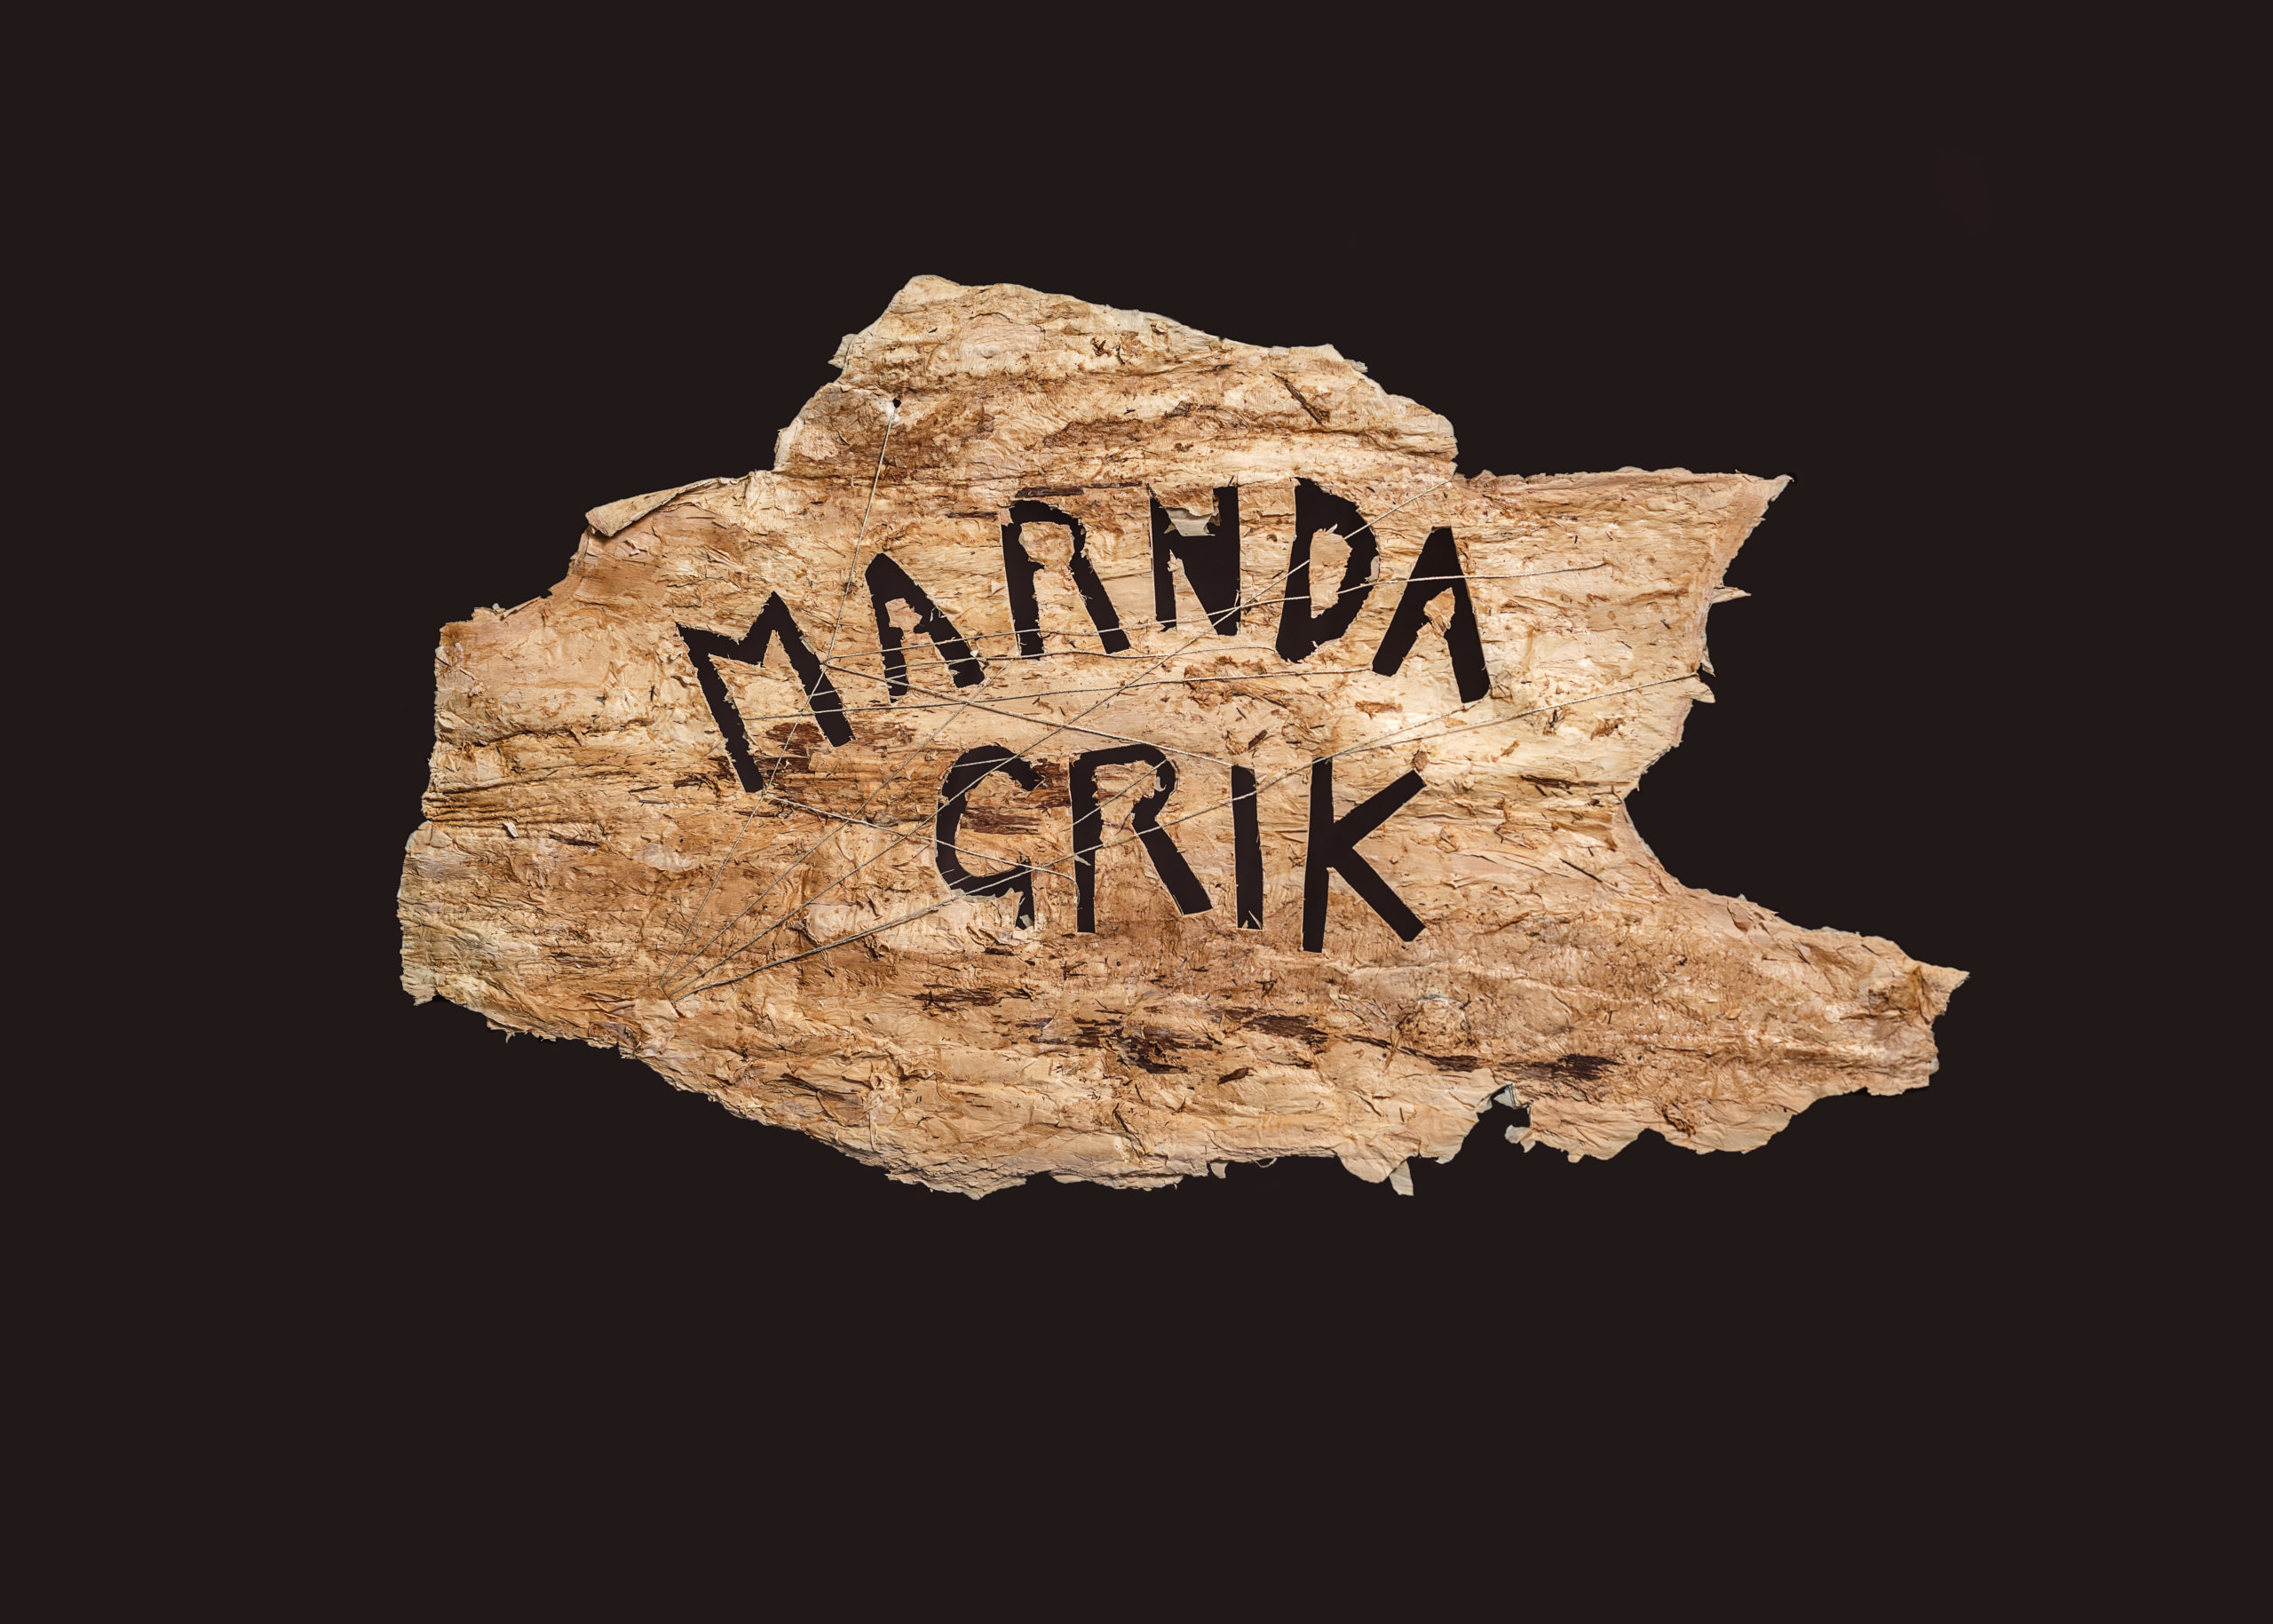 Marnda Grik – Blackgin